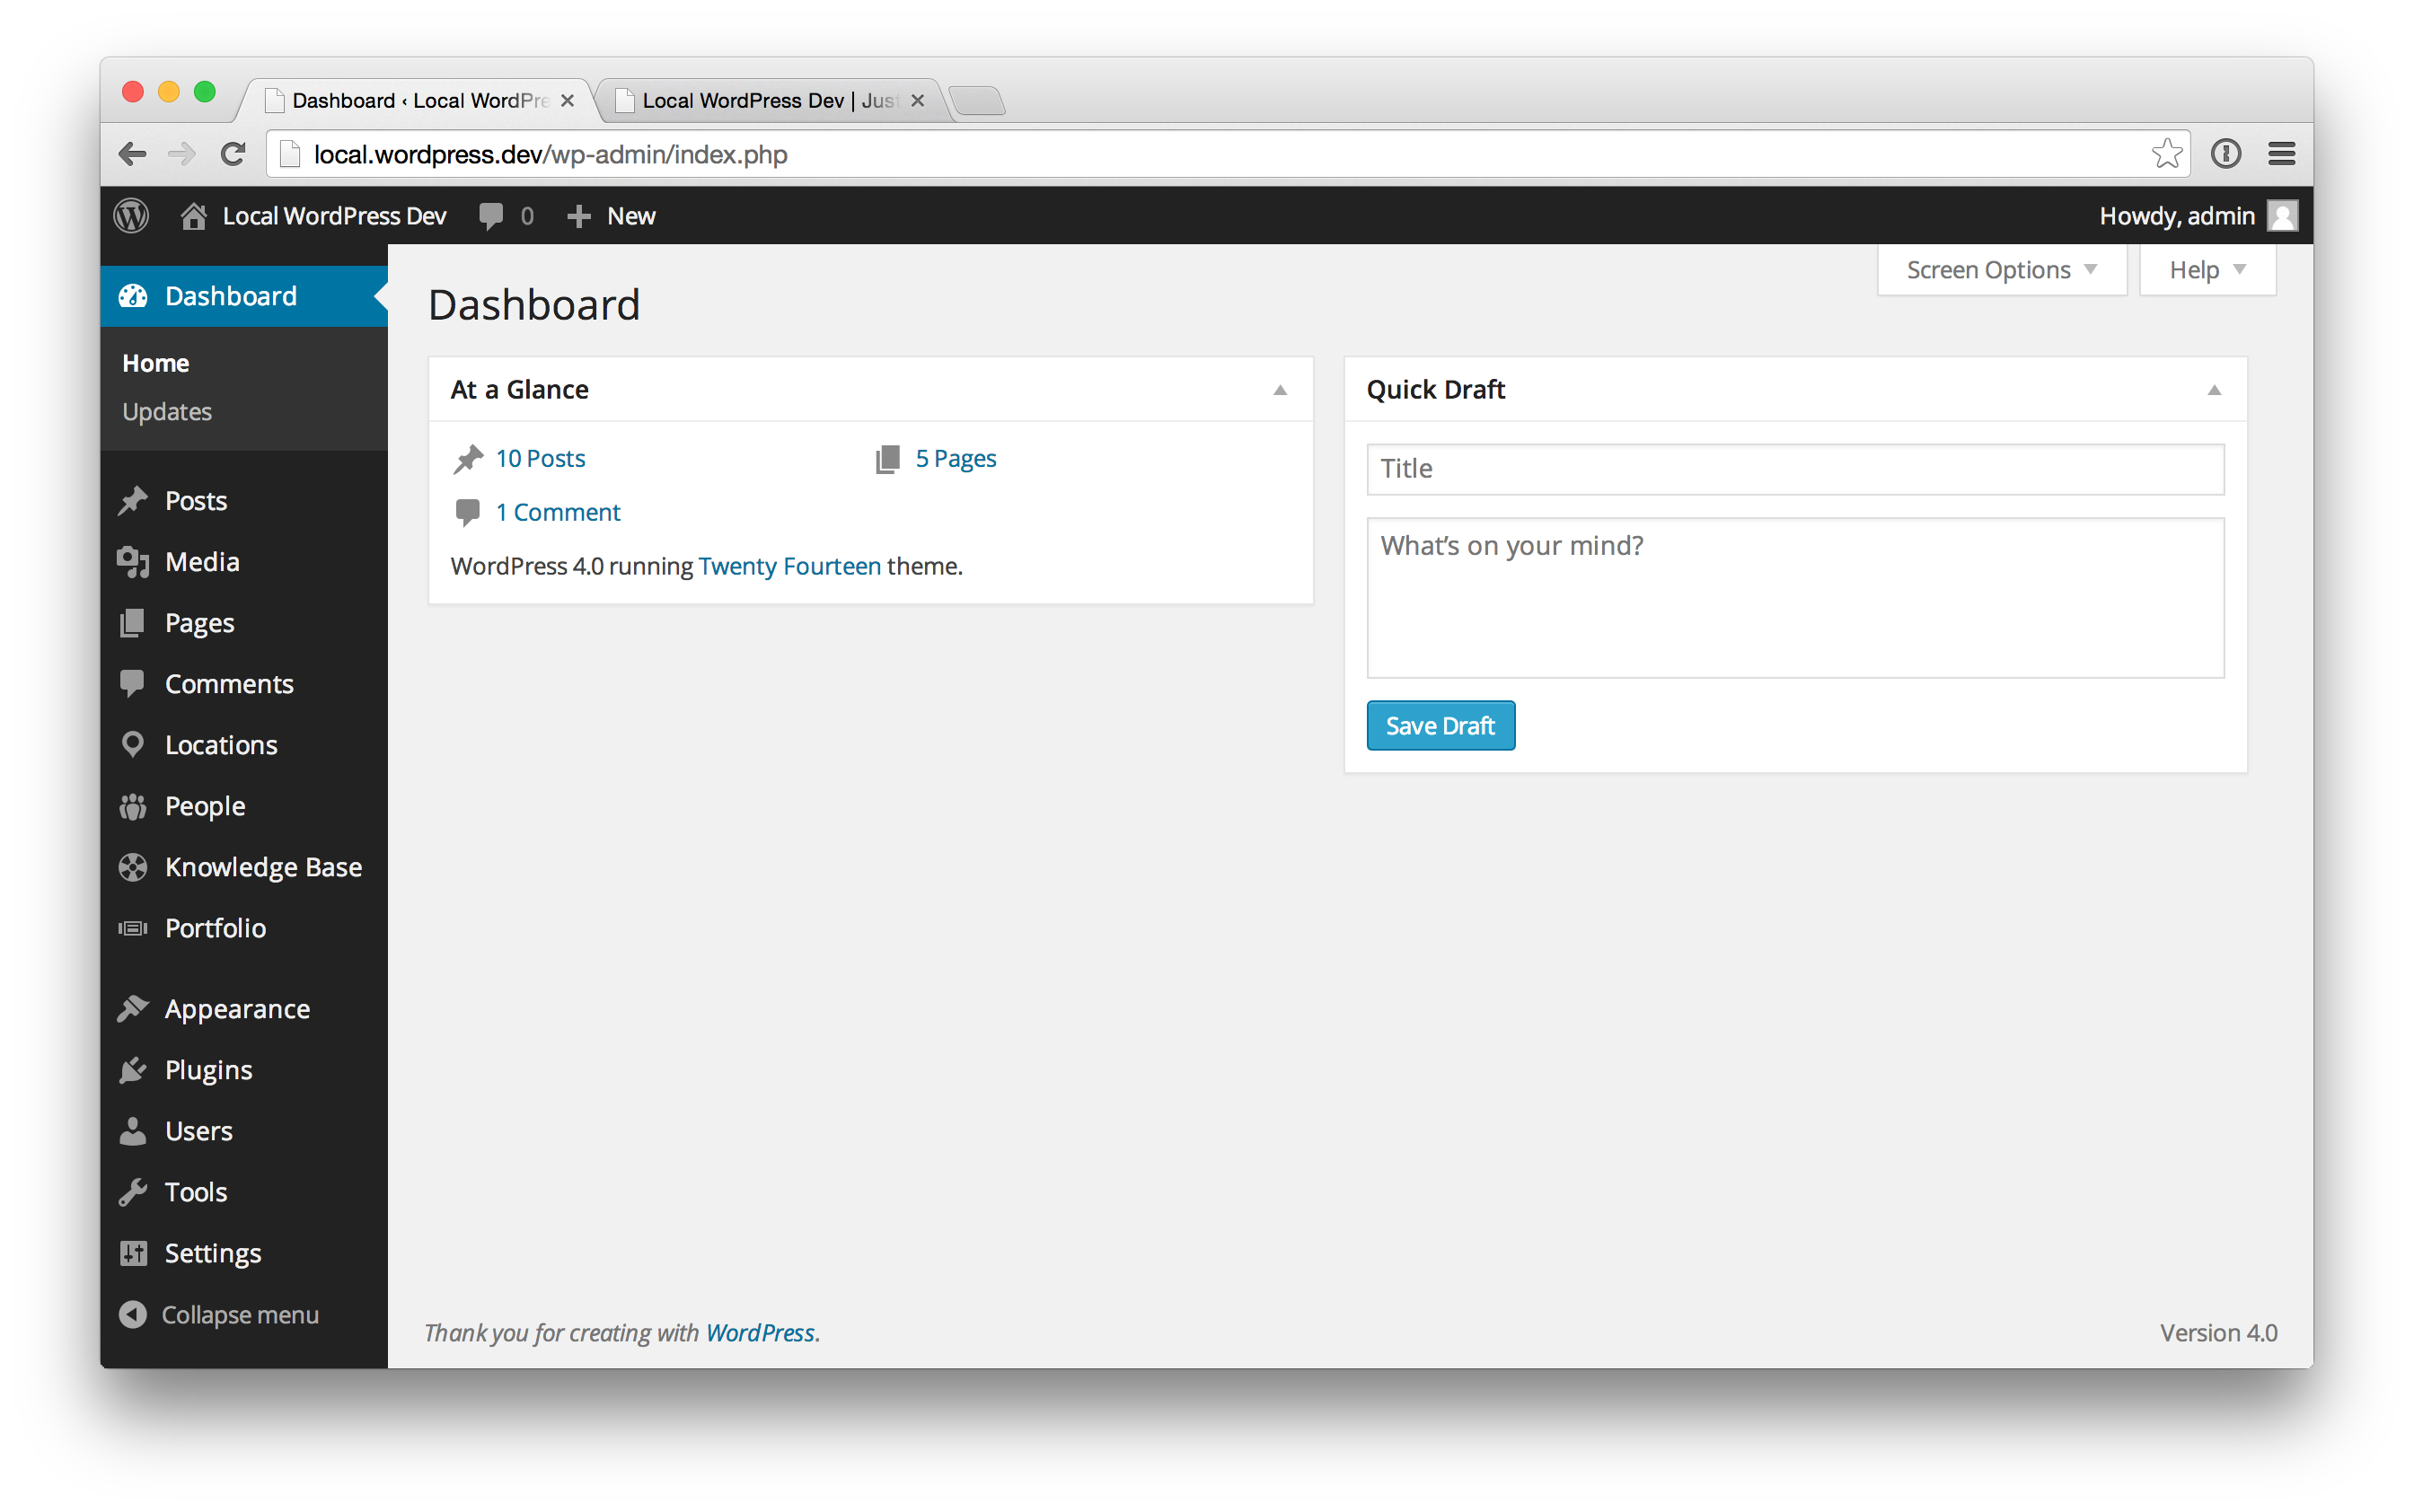 A typical WordPress site with multiple CPTs